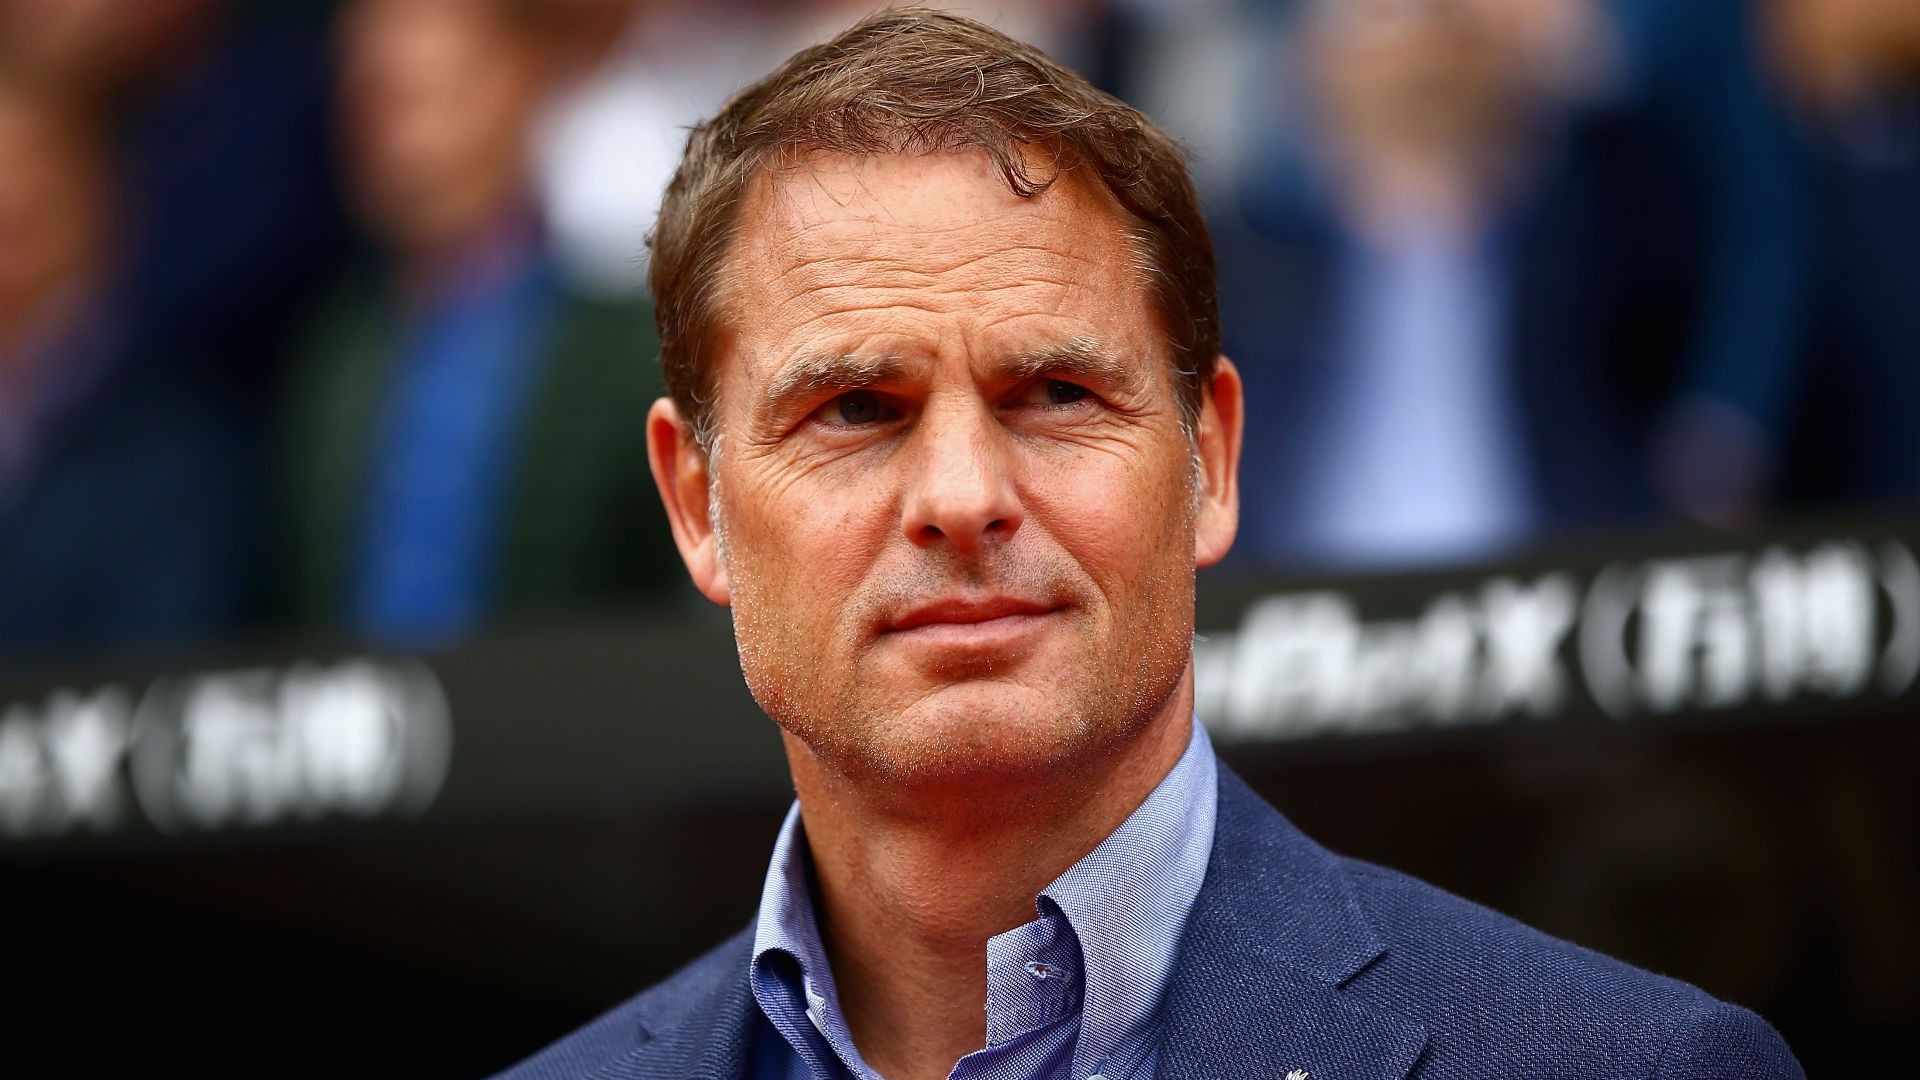 De Boer takes charge of MLS Cup champions Atlanta United